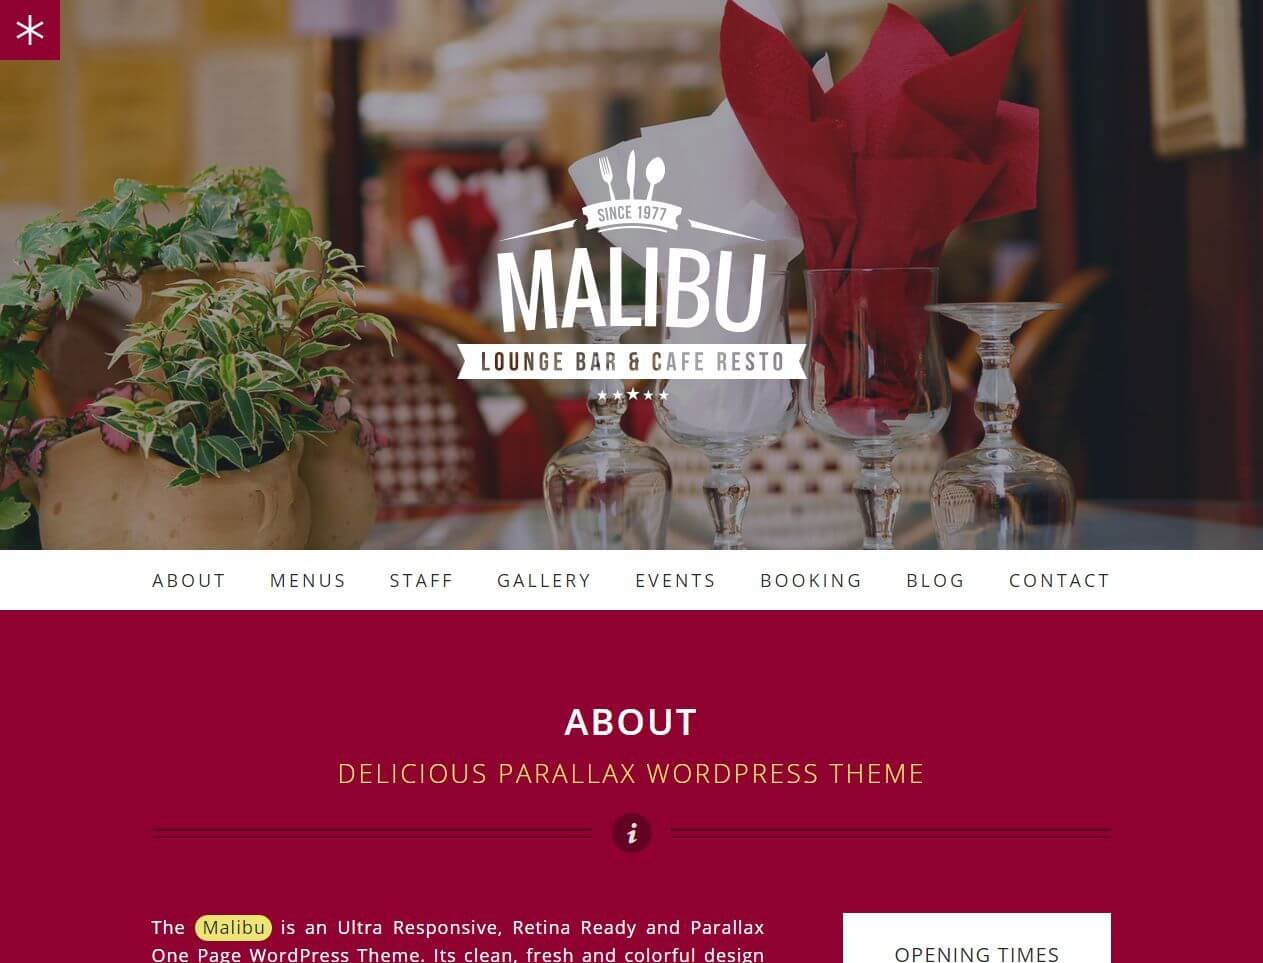 FireShot Screen Capture #162 - 'Malibu – Lounge Bar & Cafe Resto' - themetonic_net_malibu